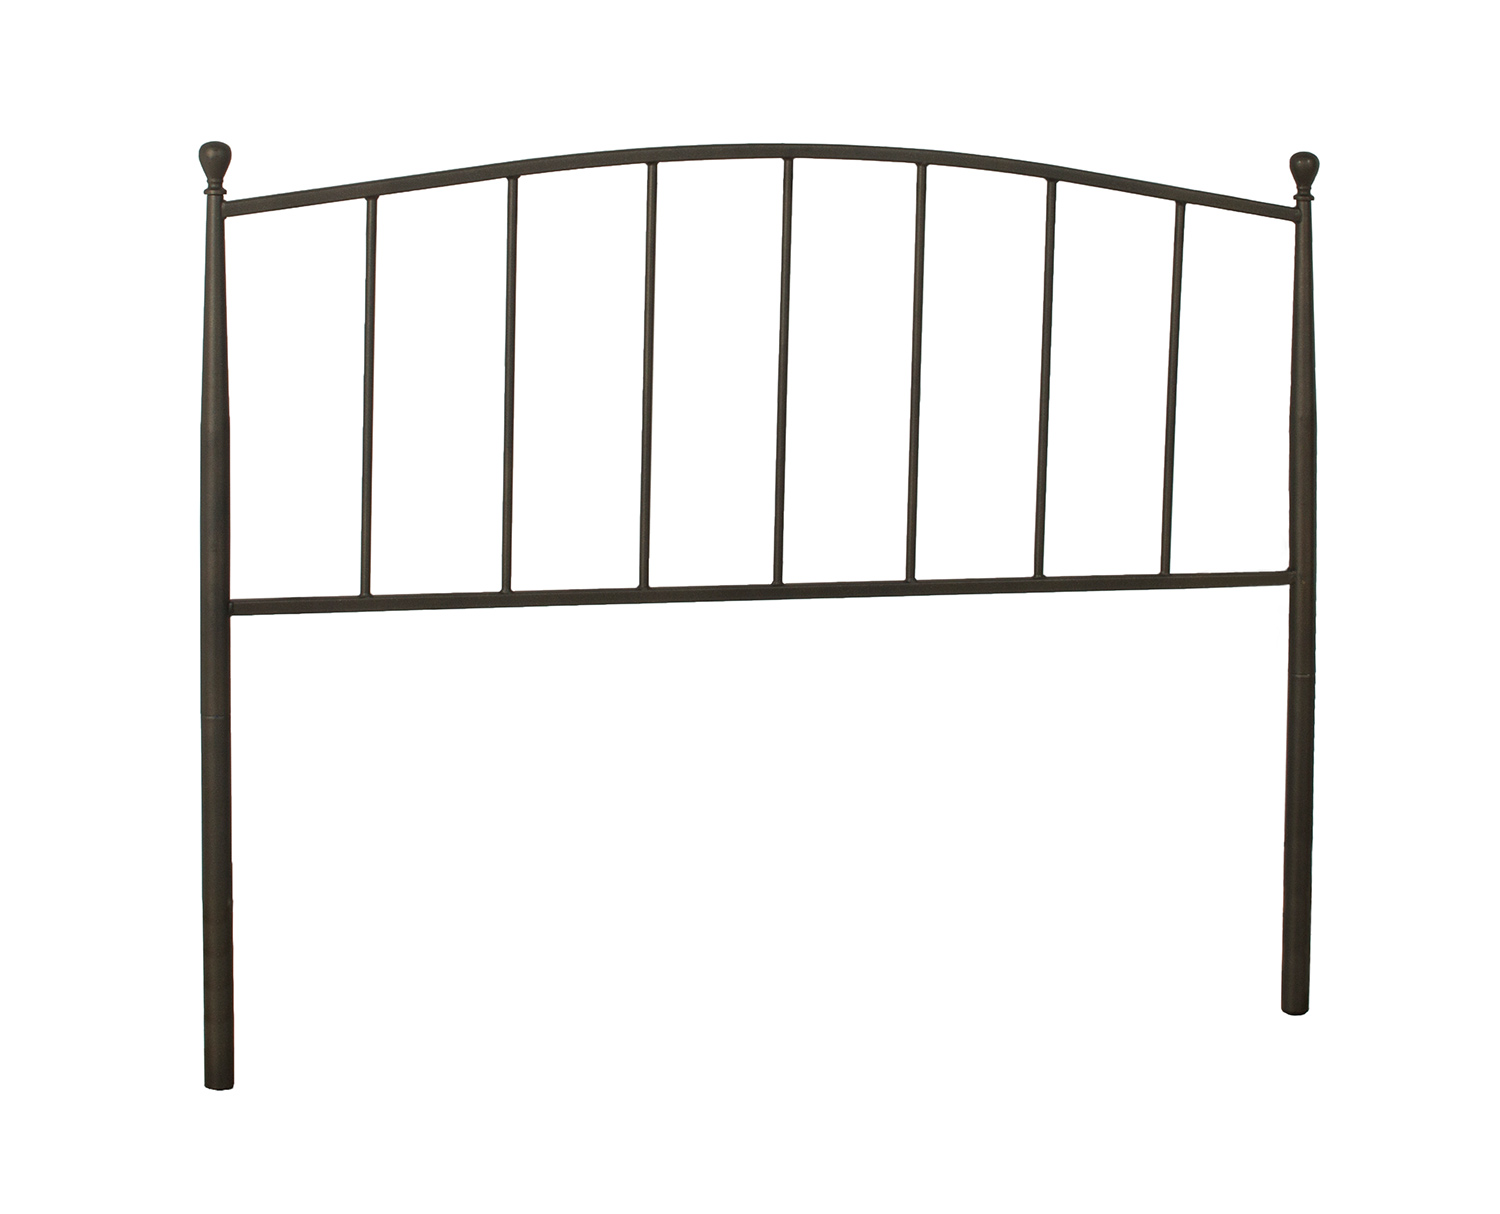 Hillsdale Warwick Metal Headboard with Frame - Gray Bronze